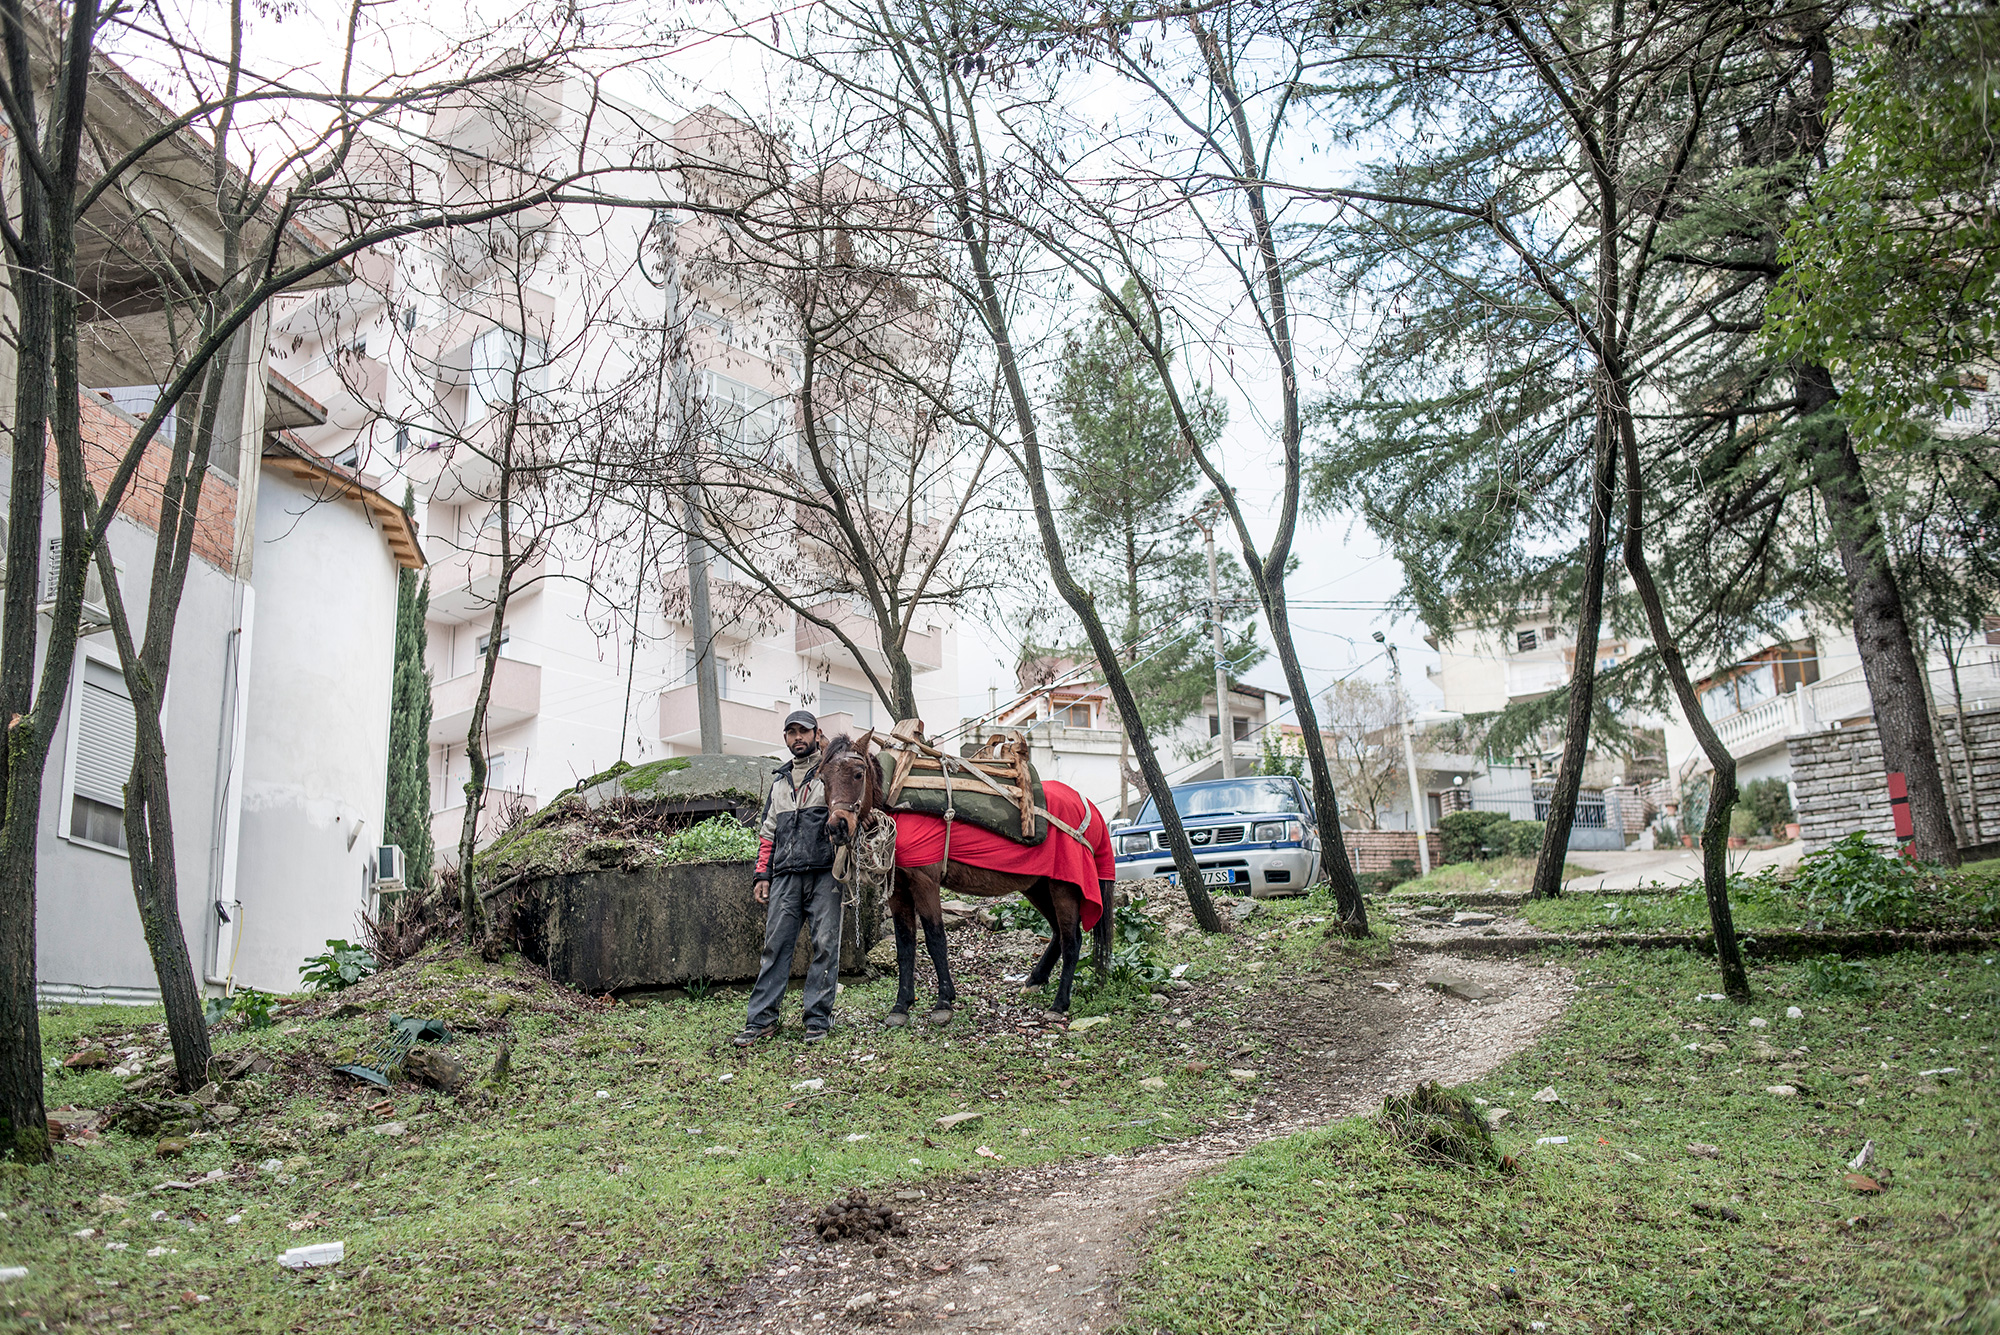 A gypsy with a horse stands by a bunker, Gjirokaster - Albania